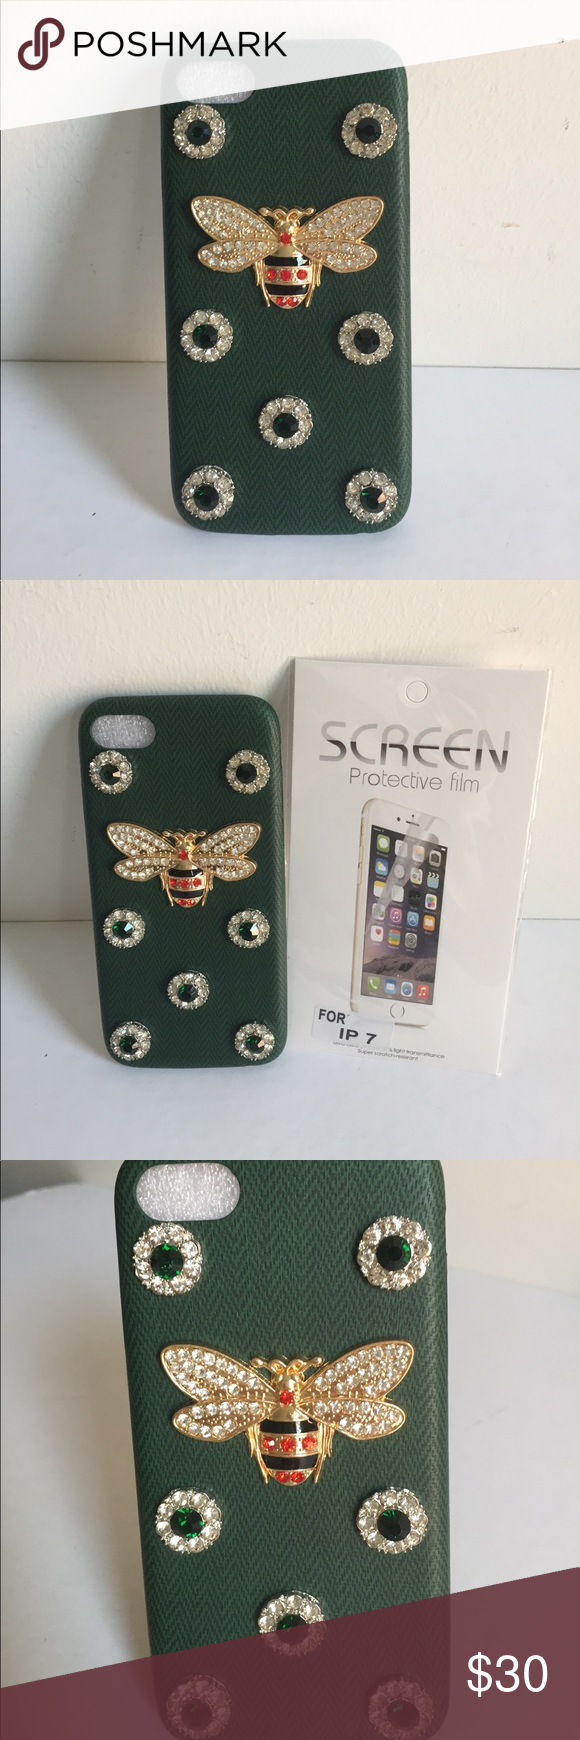 separation shoes 42821 9fec7 Gucci Crystal Bee iPhone 7 case Soft Green New Gucci style IPhone 7 ...